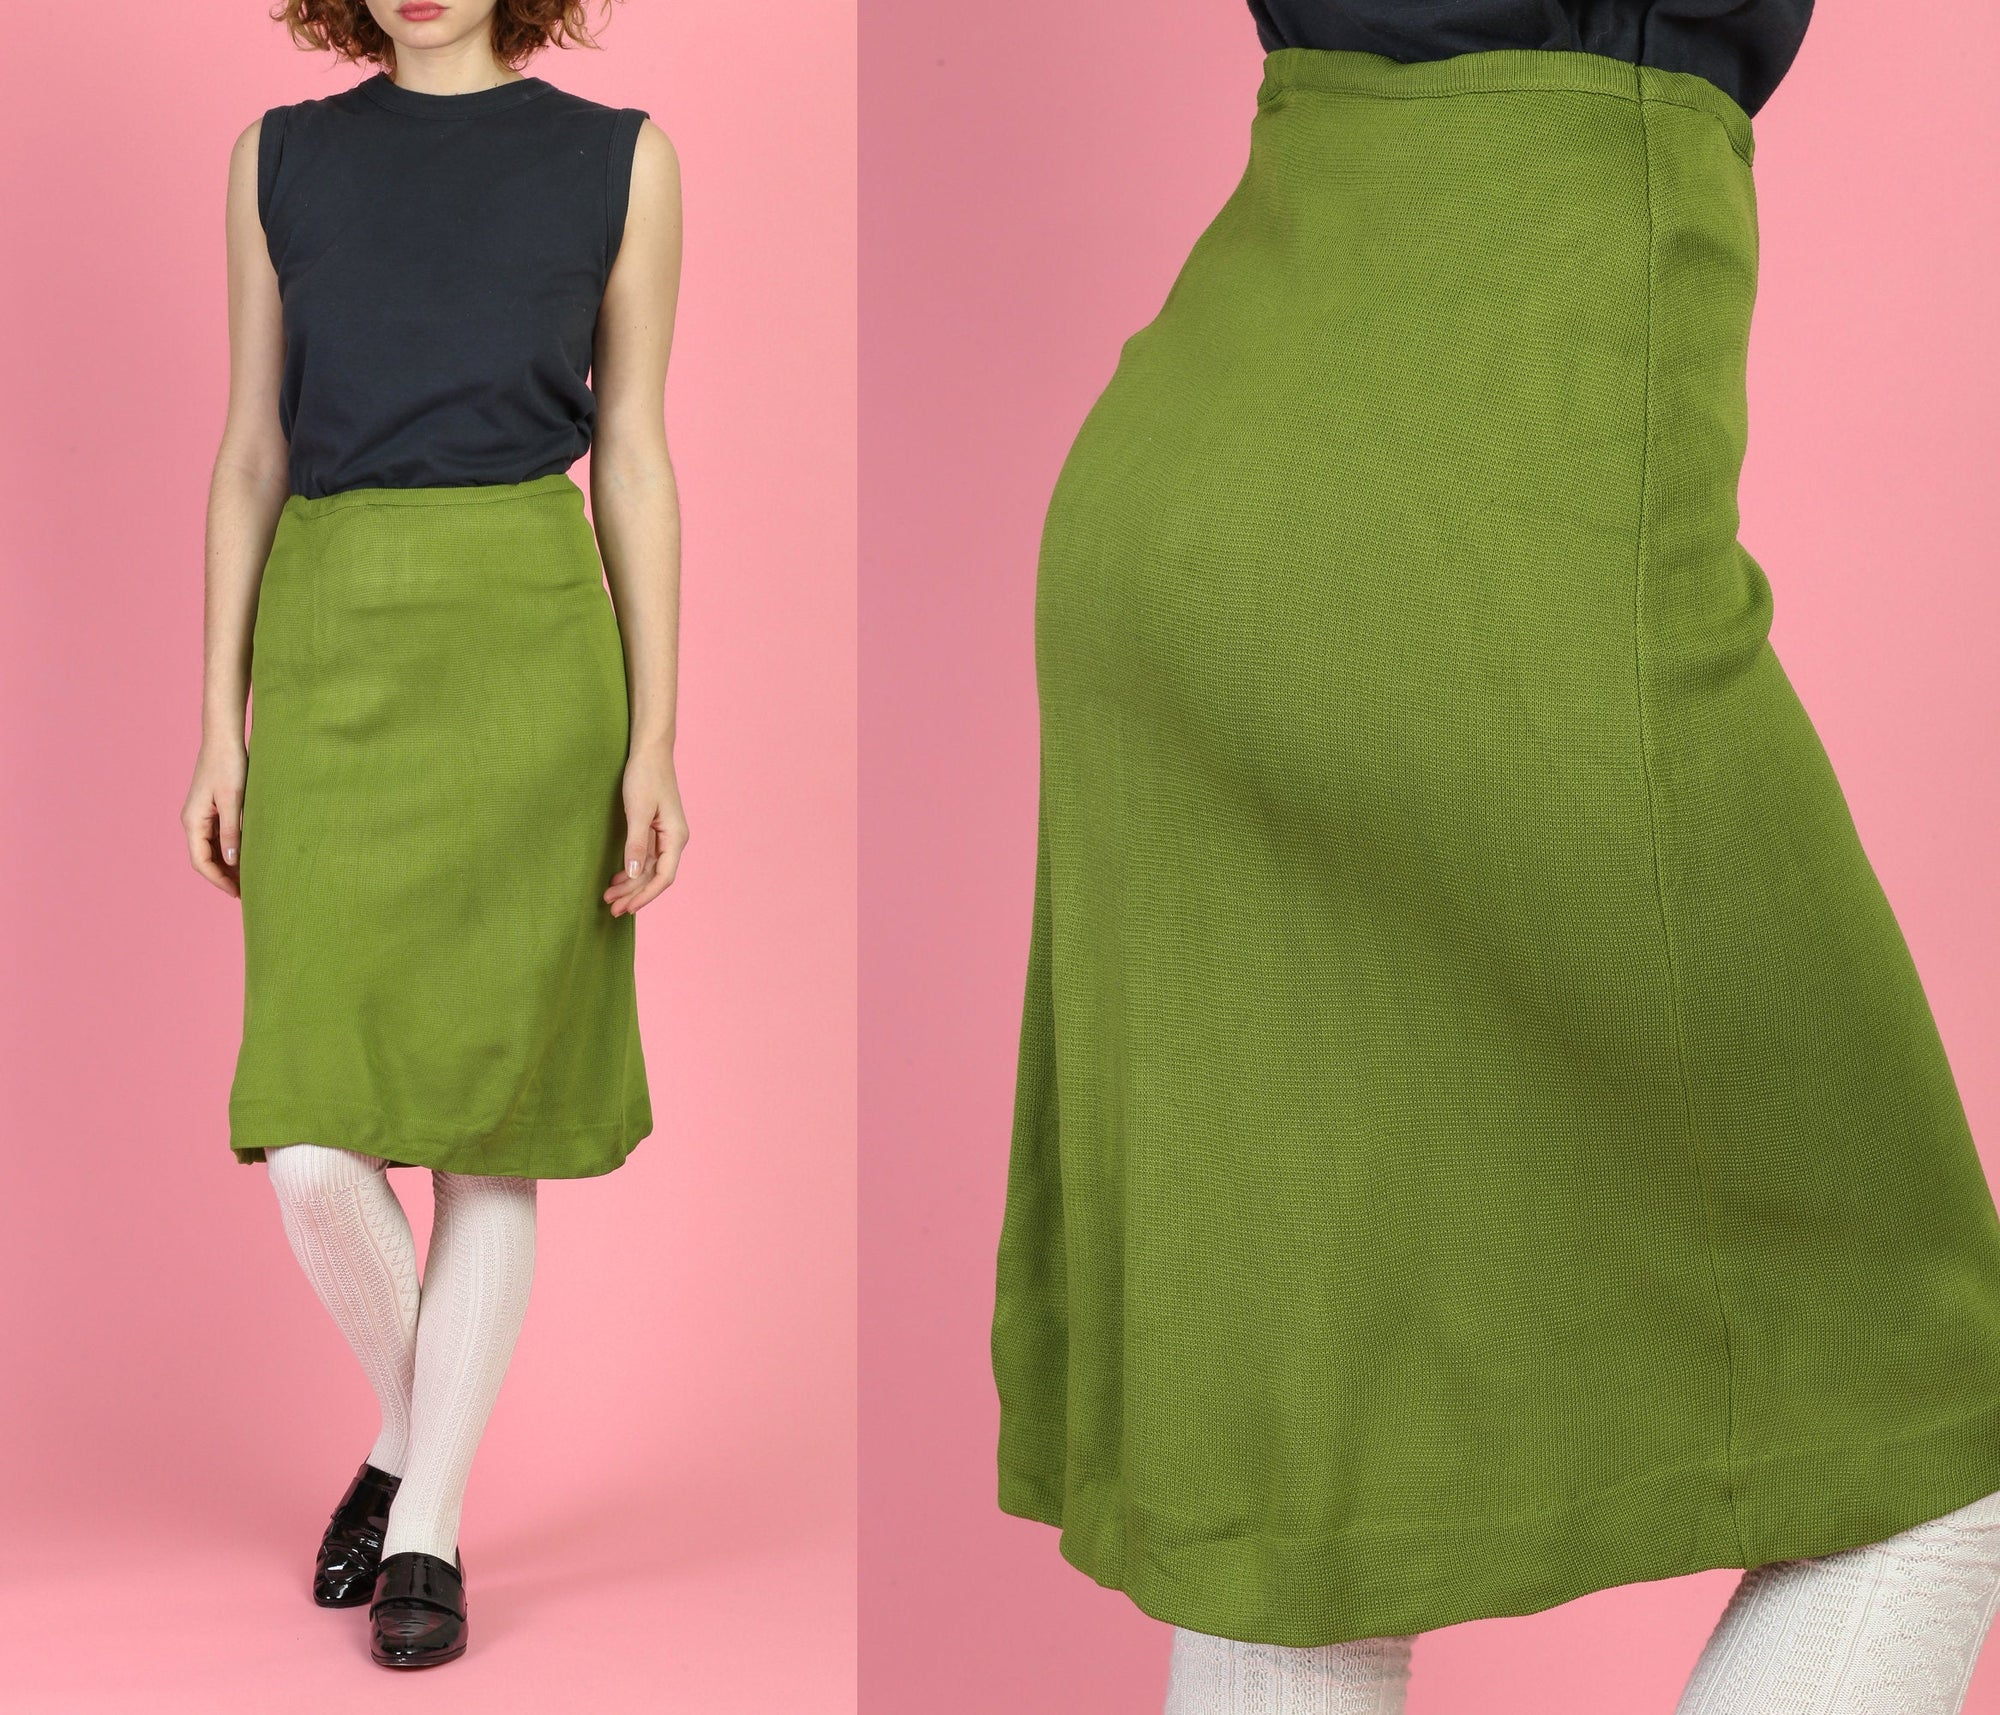 60s Olive Knit A Line Skirt - Medium